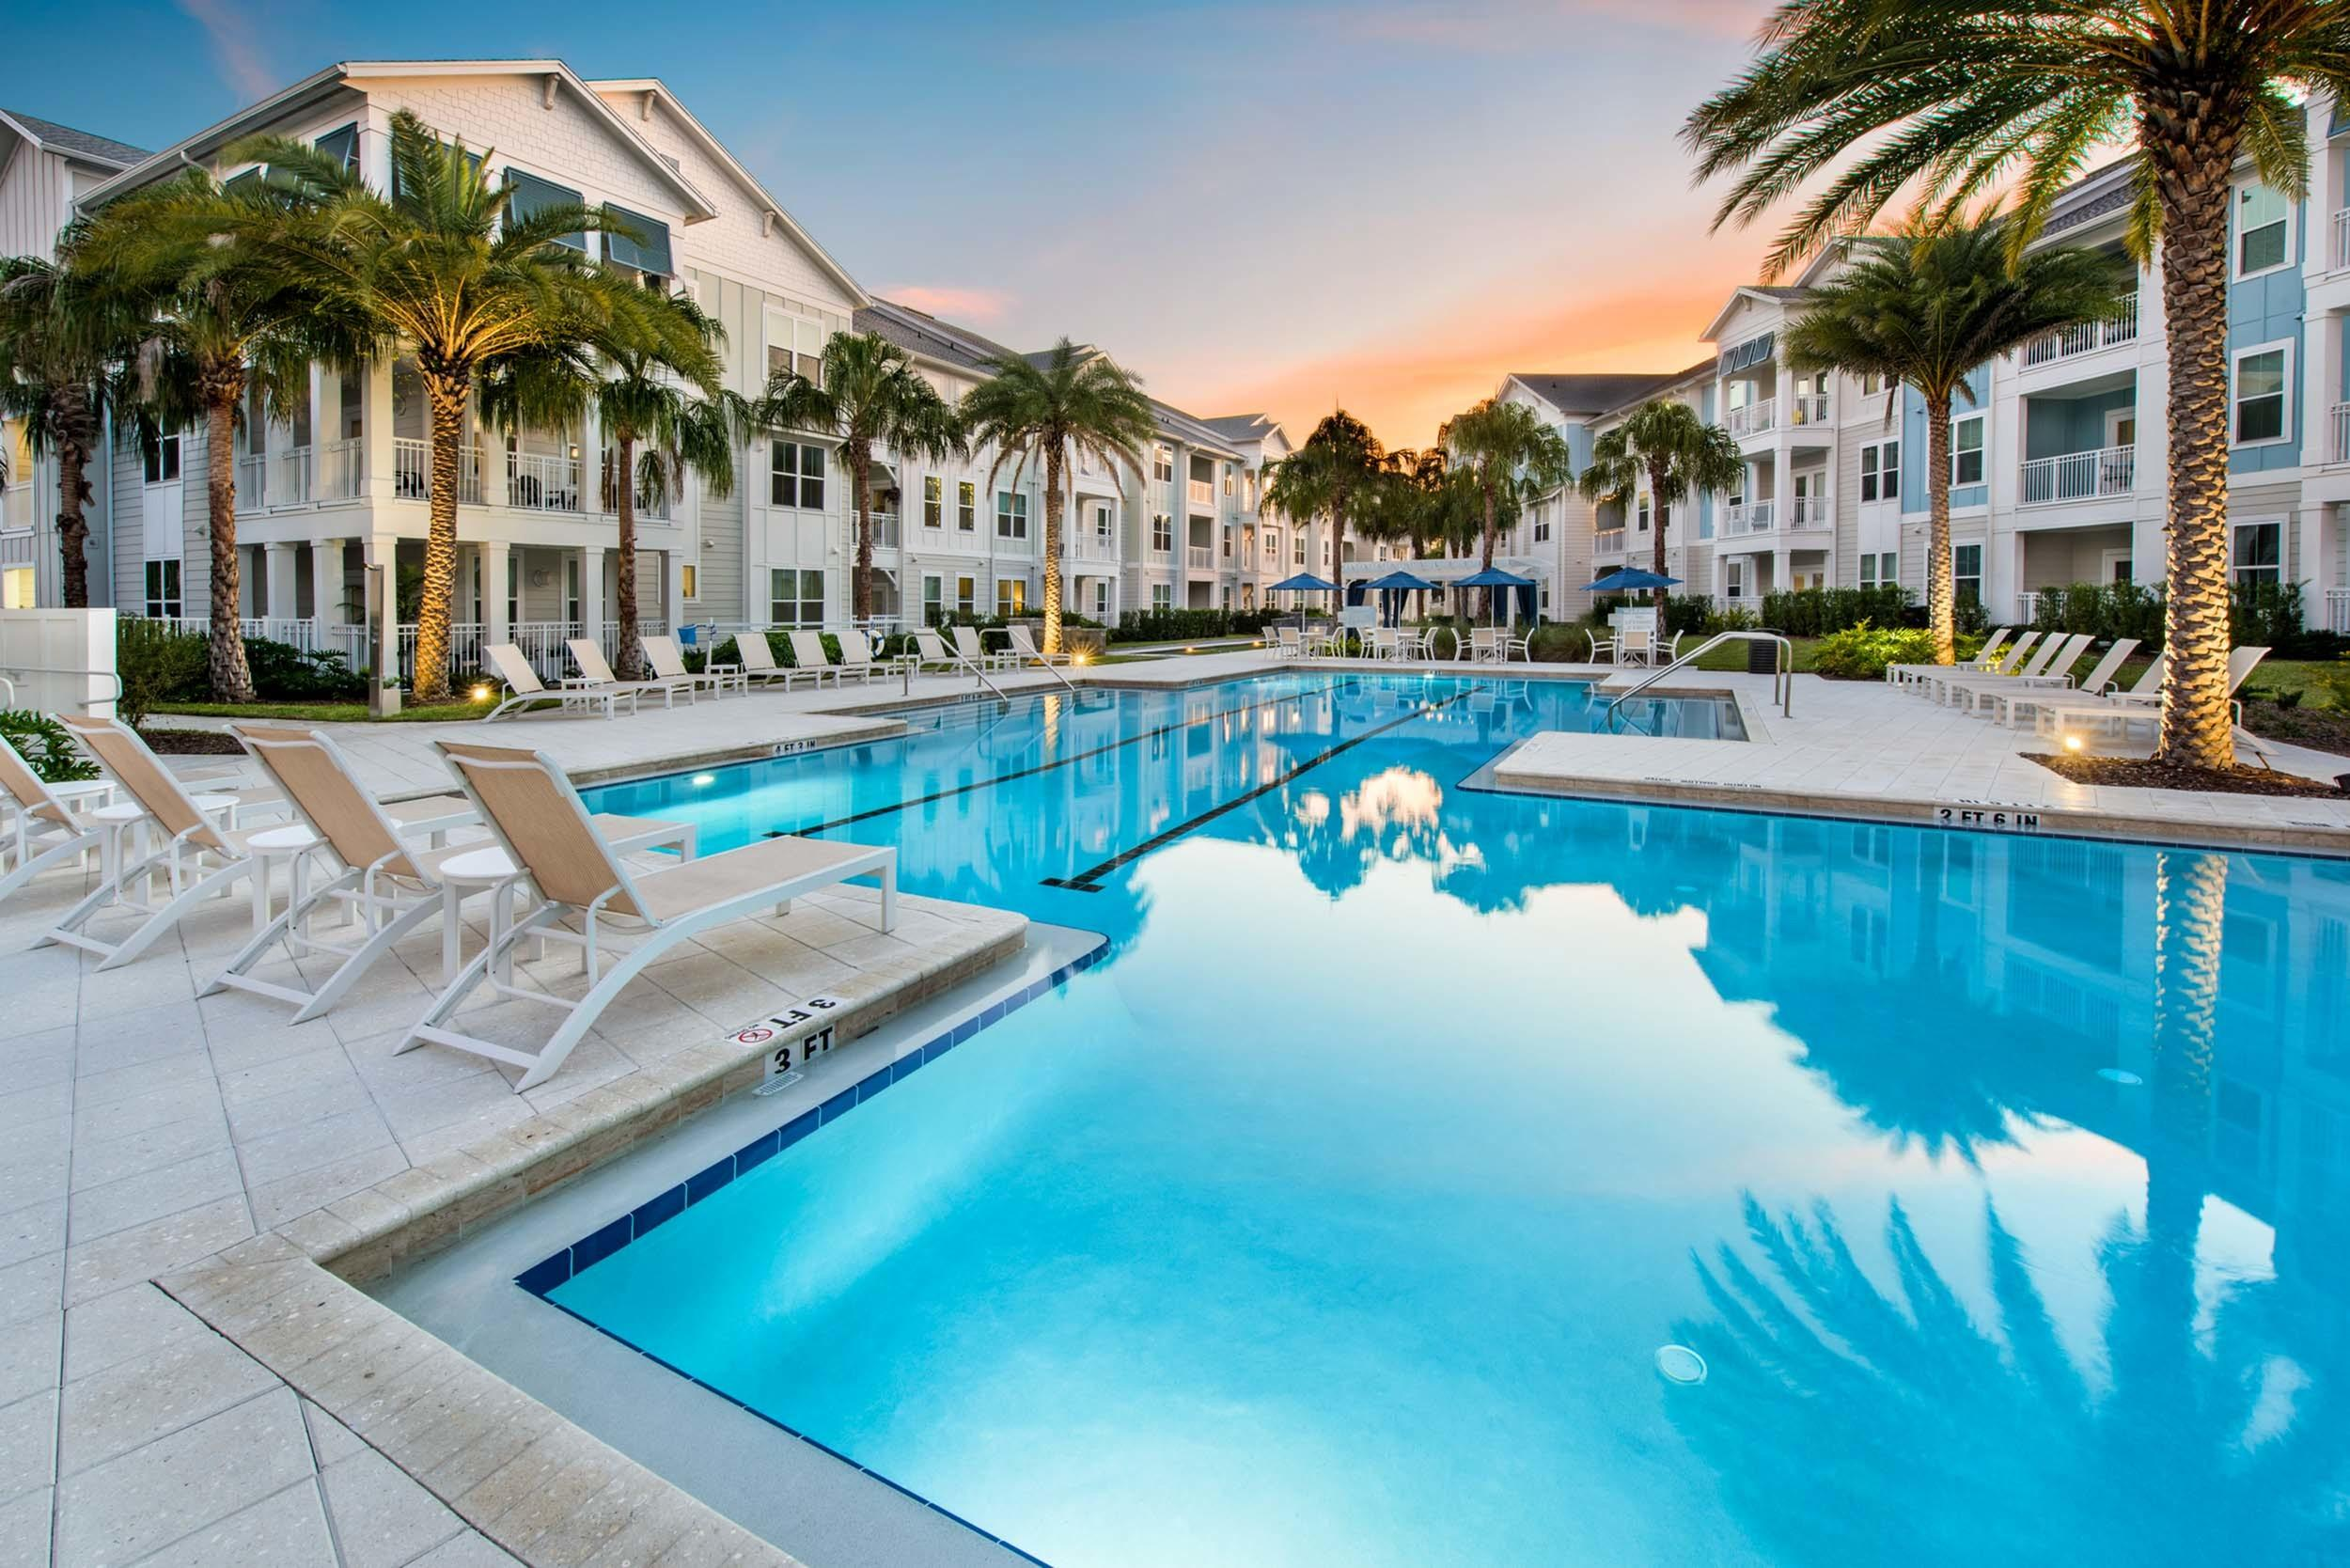 Passco Companies Bolsters Florida Portfolio with Acquisition of 244-Unit Multifamily Community in Ponte Vedra, Florida